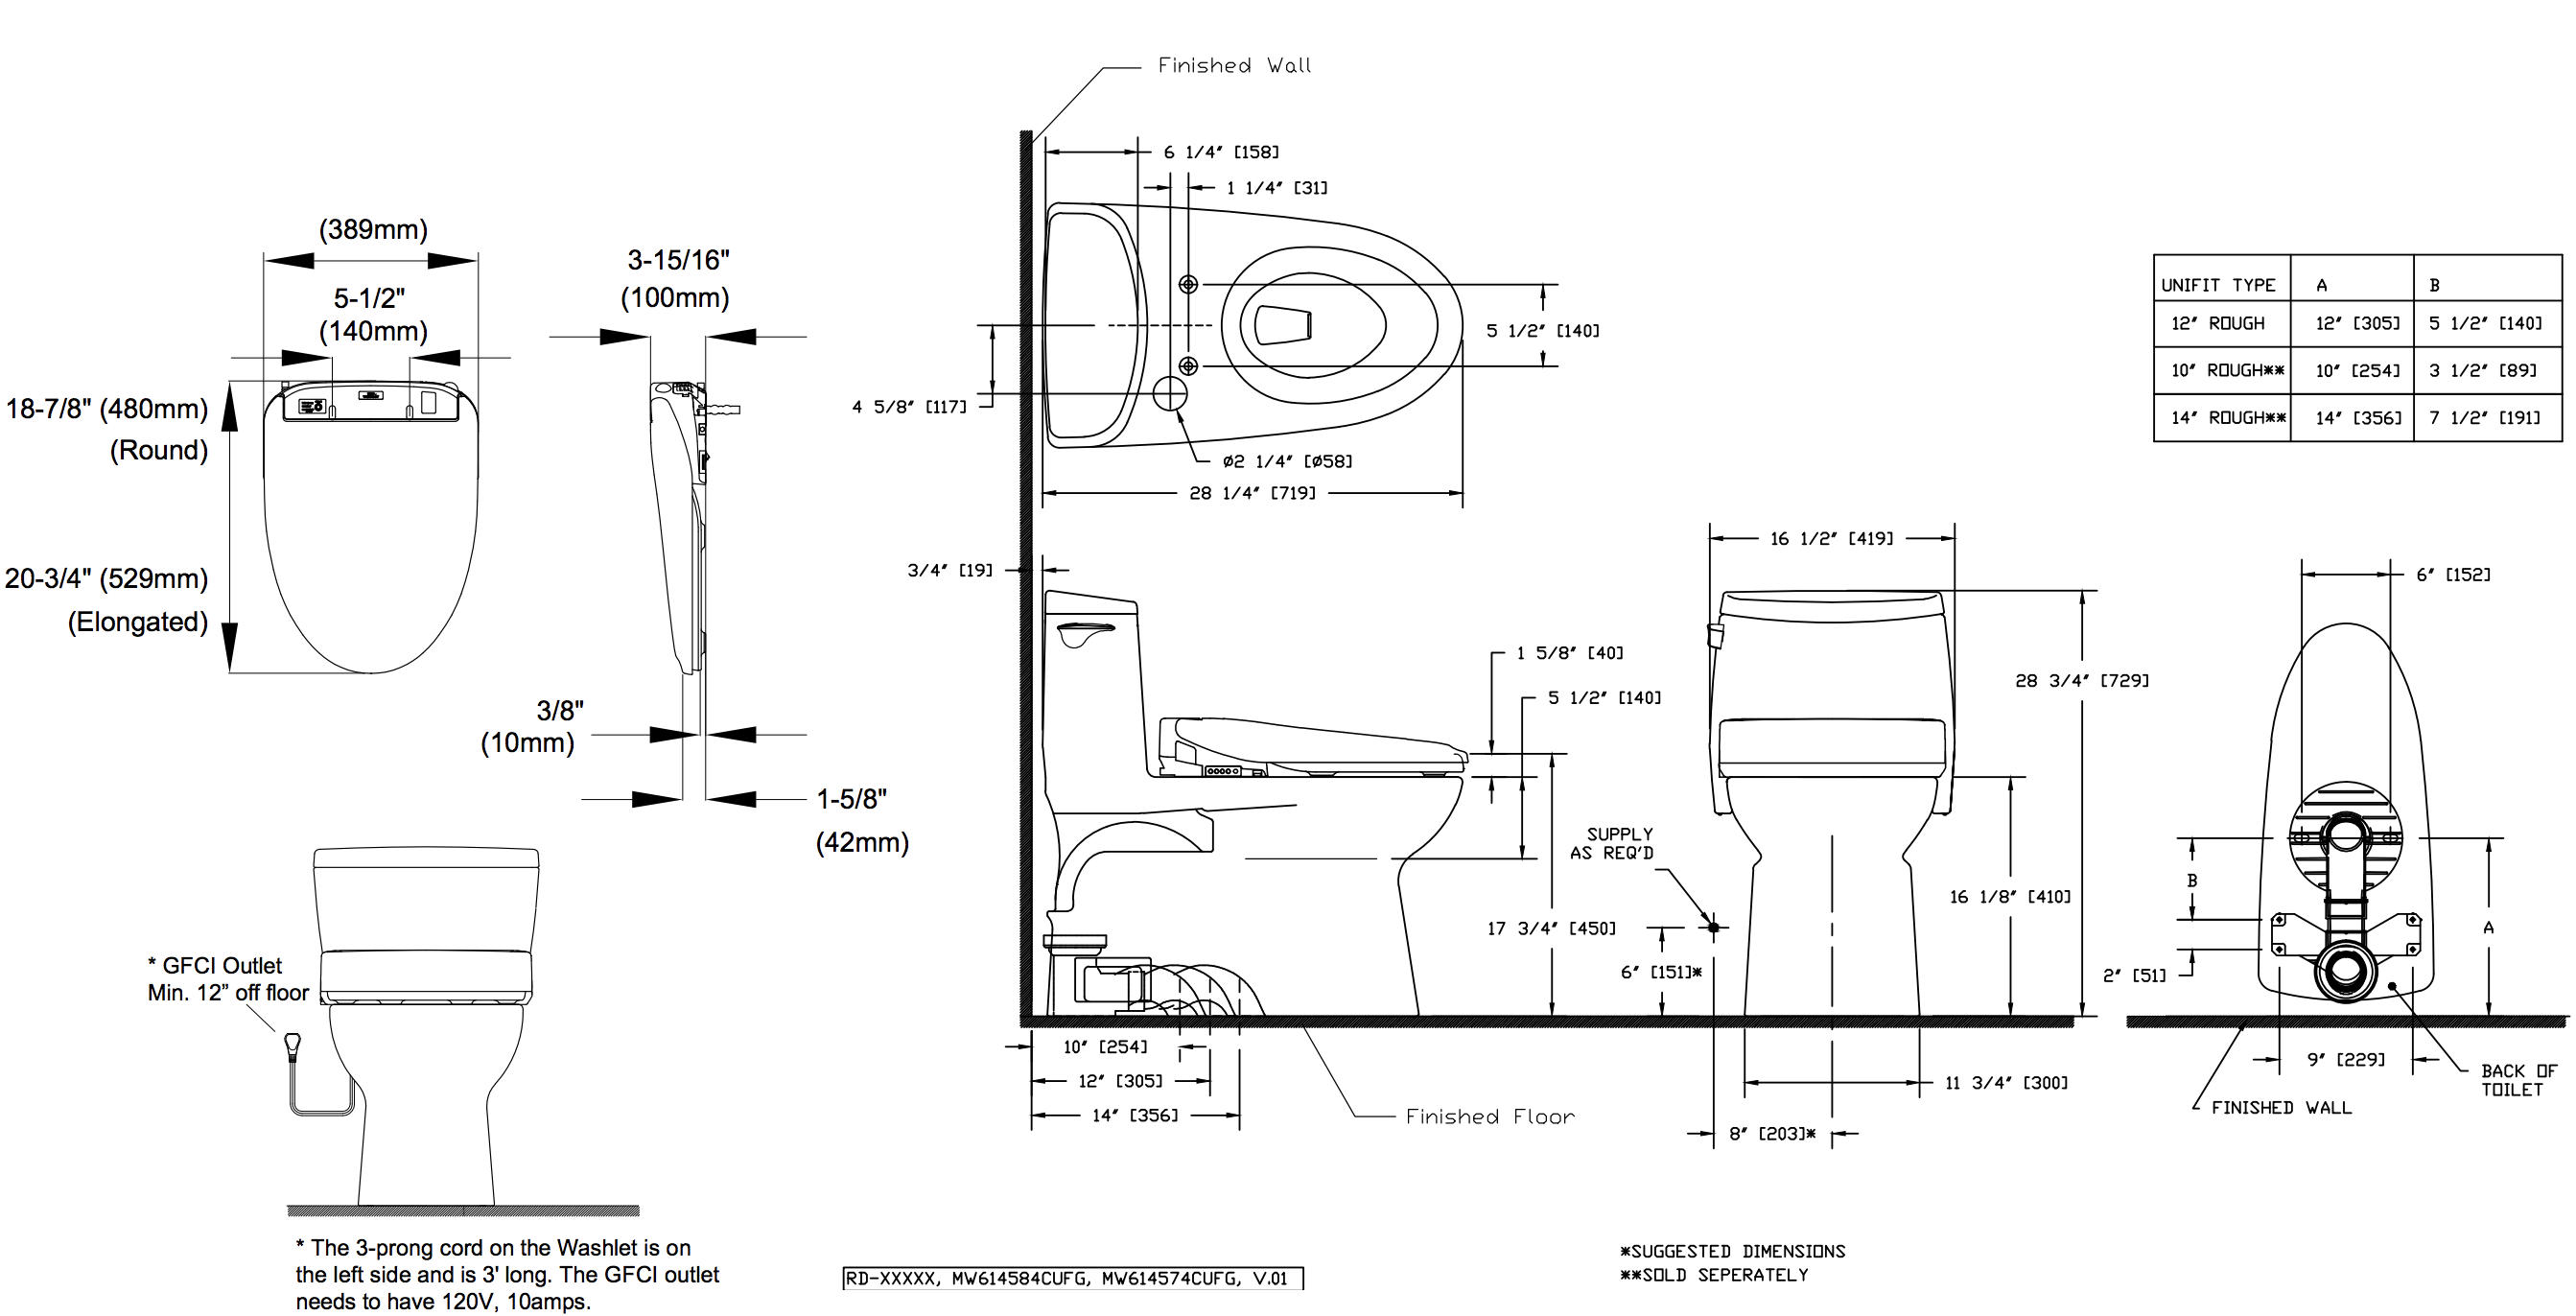 carlyle-ii-1g-washlet-s300e-one-piece-toilet-1.0-gpf-diagram.png